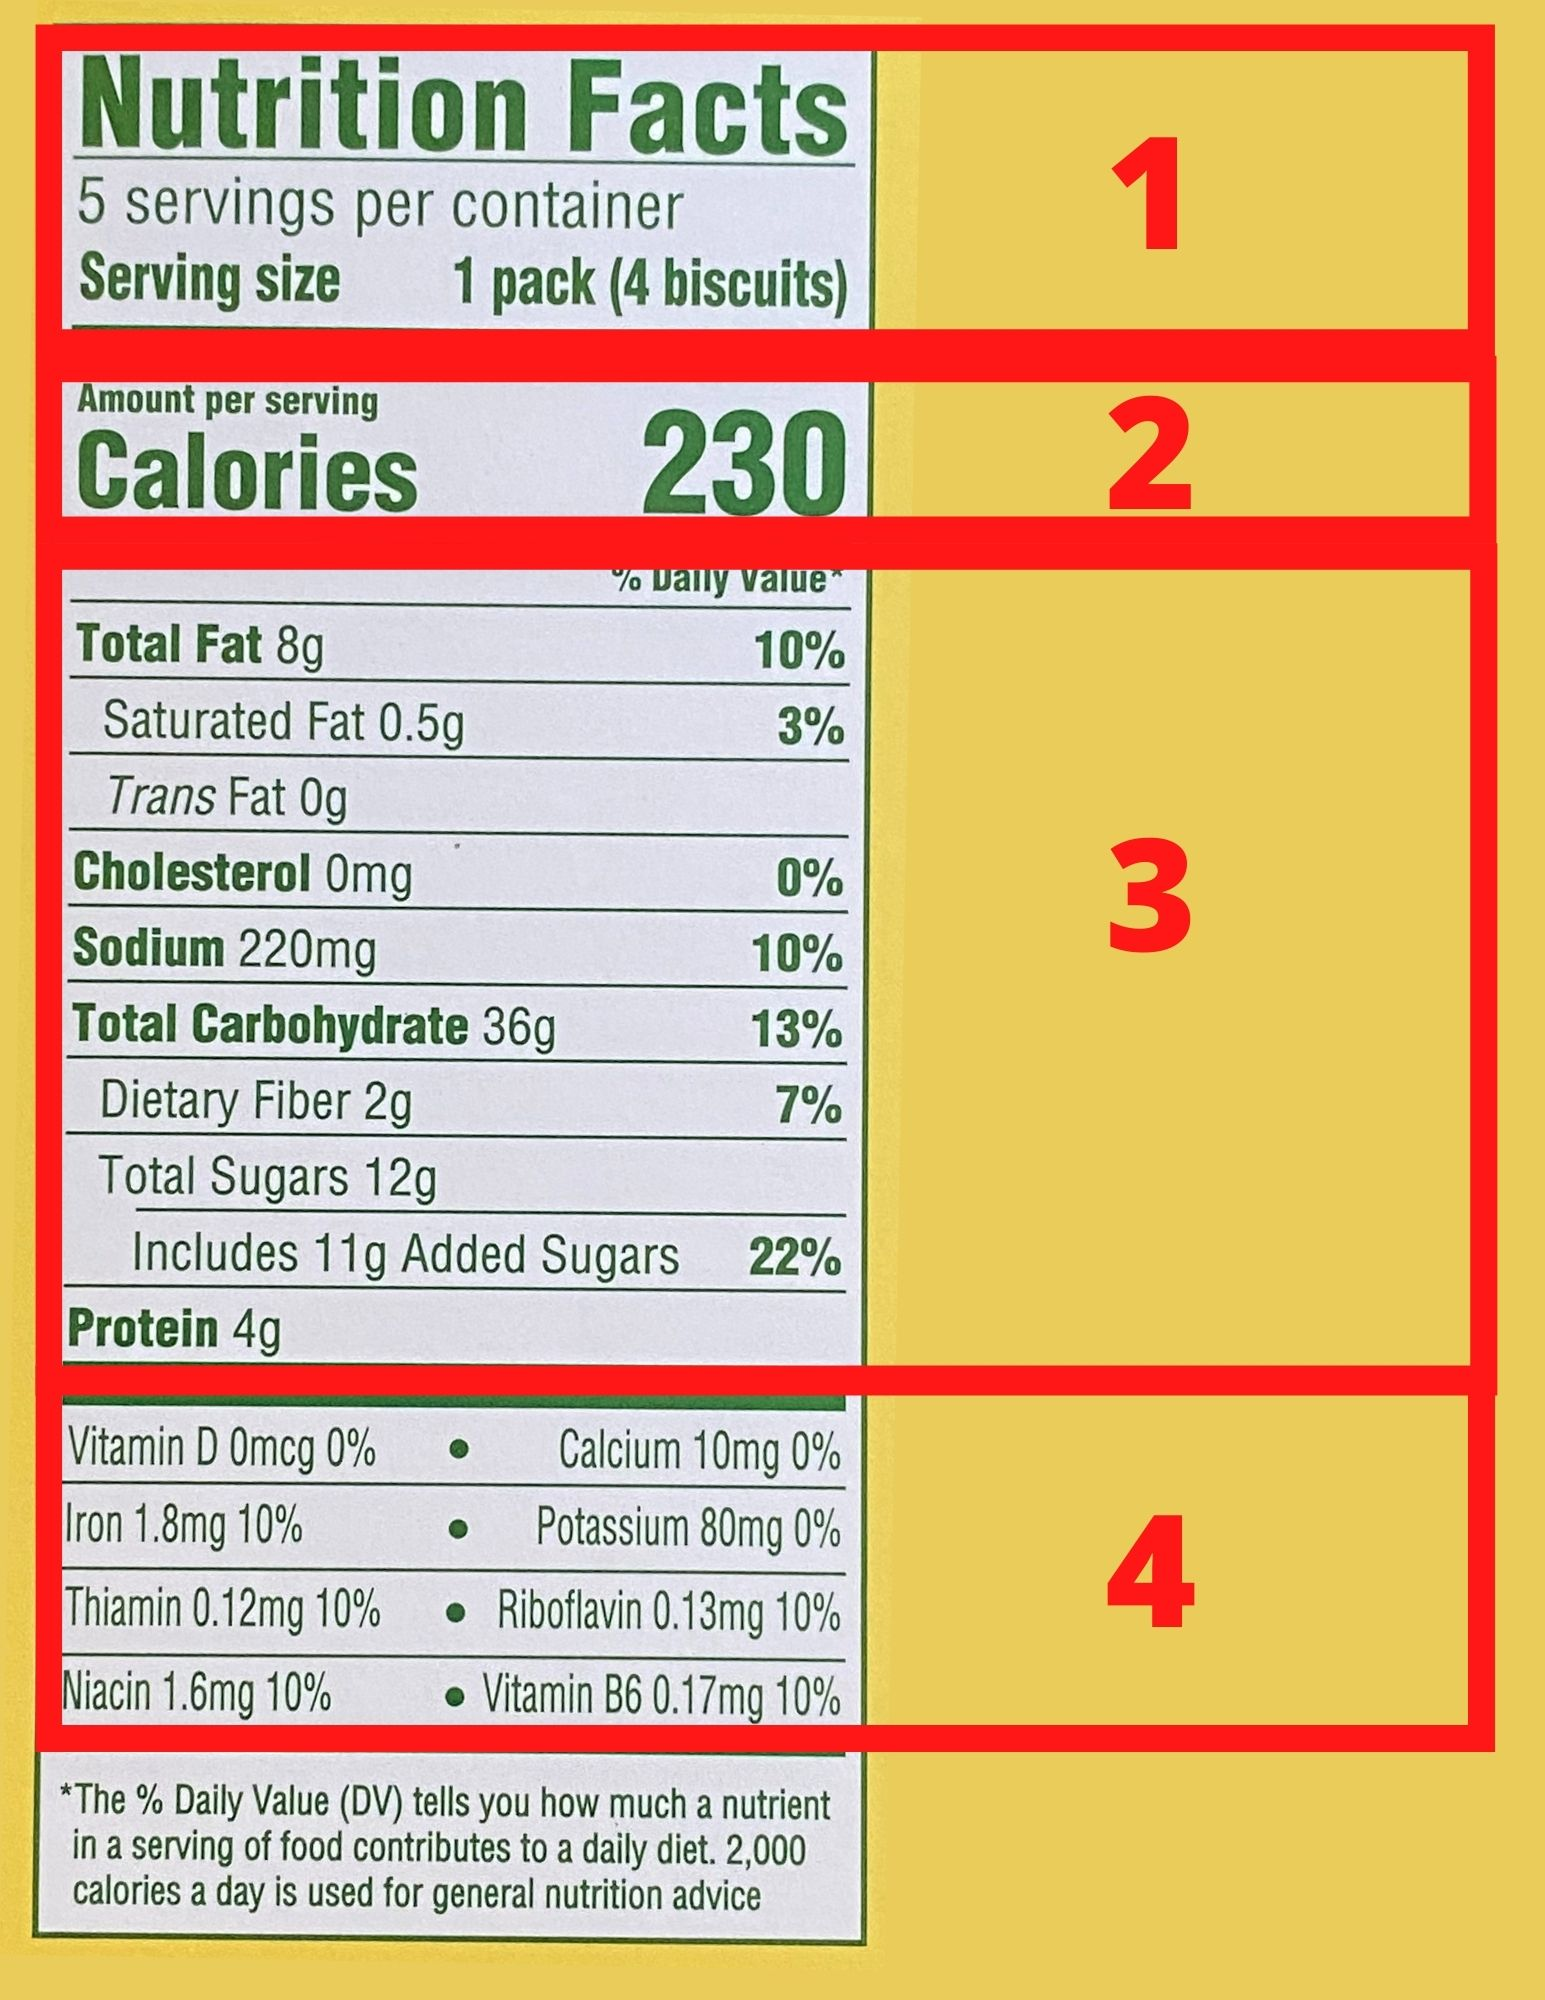 Nutrition label, divided into 4 sections.